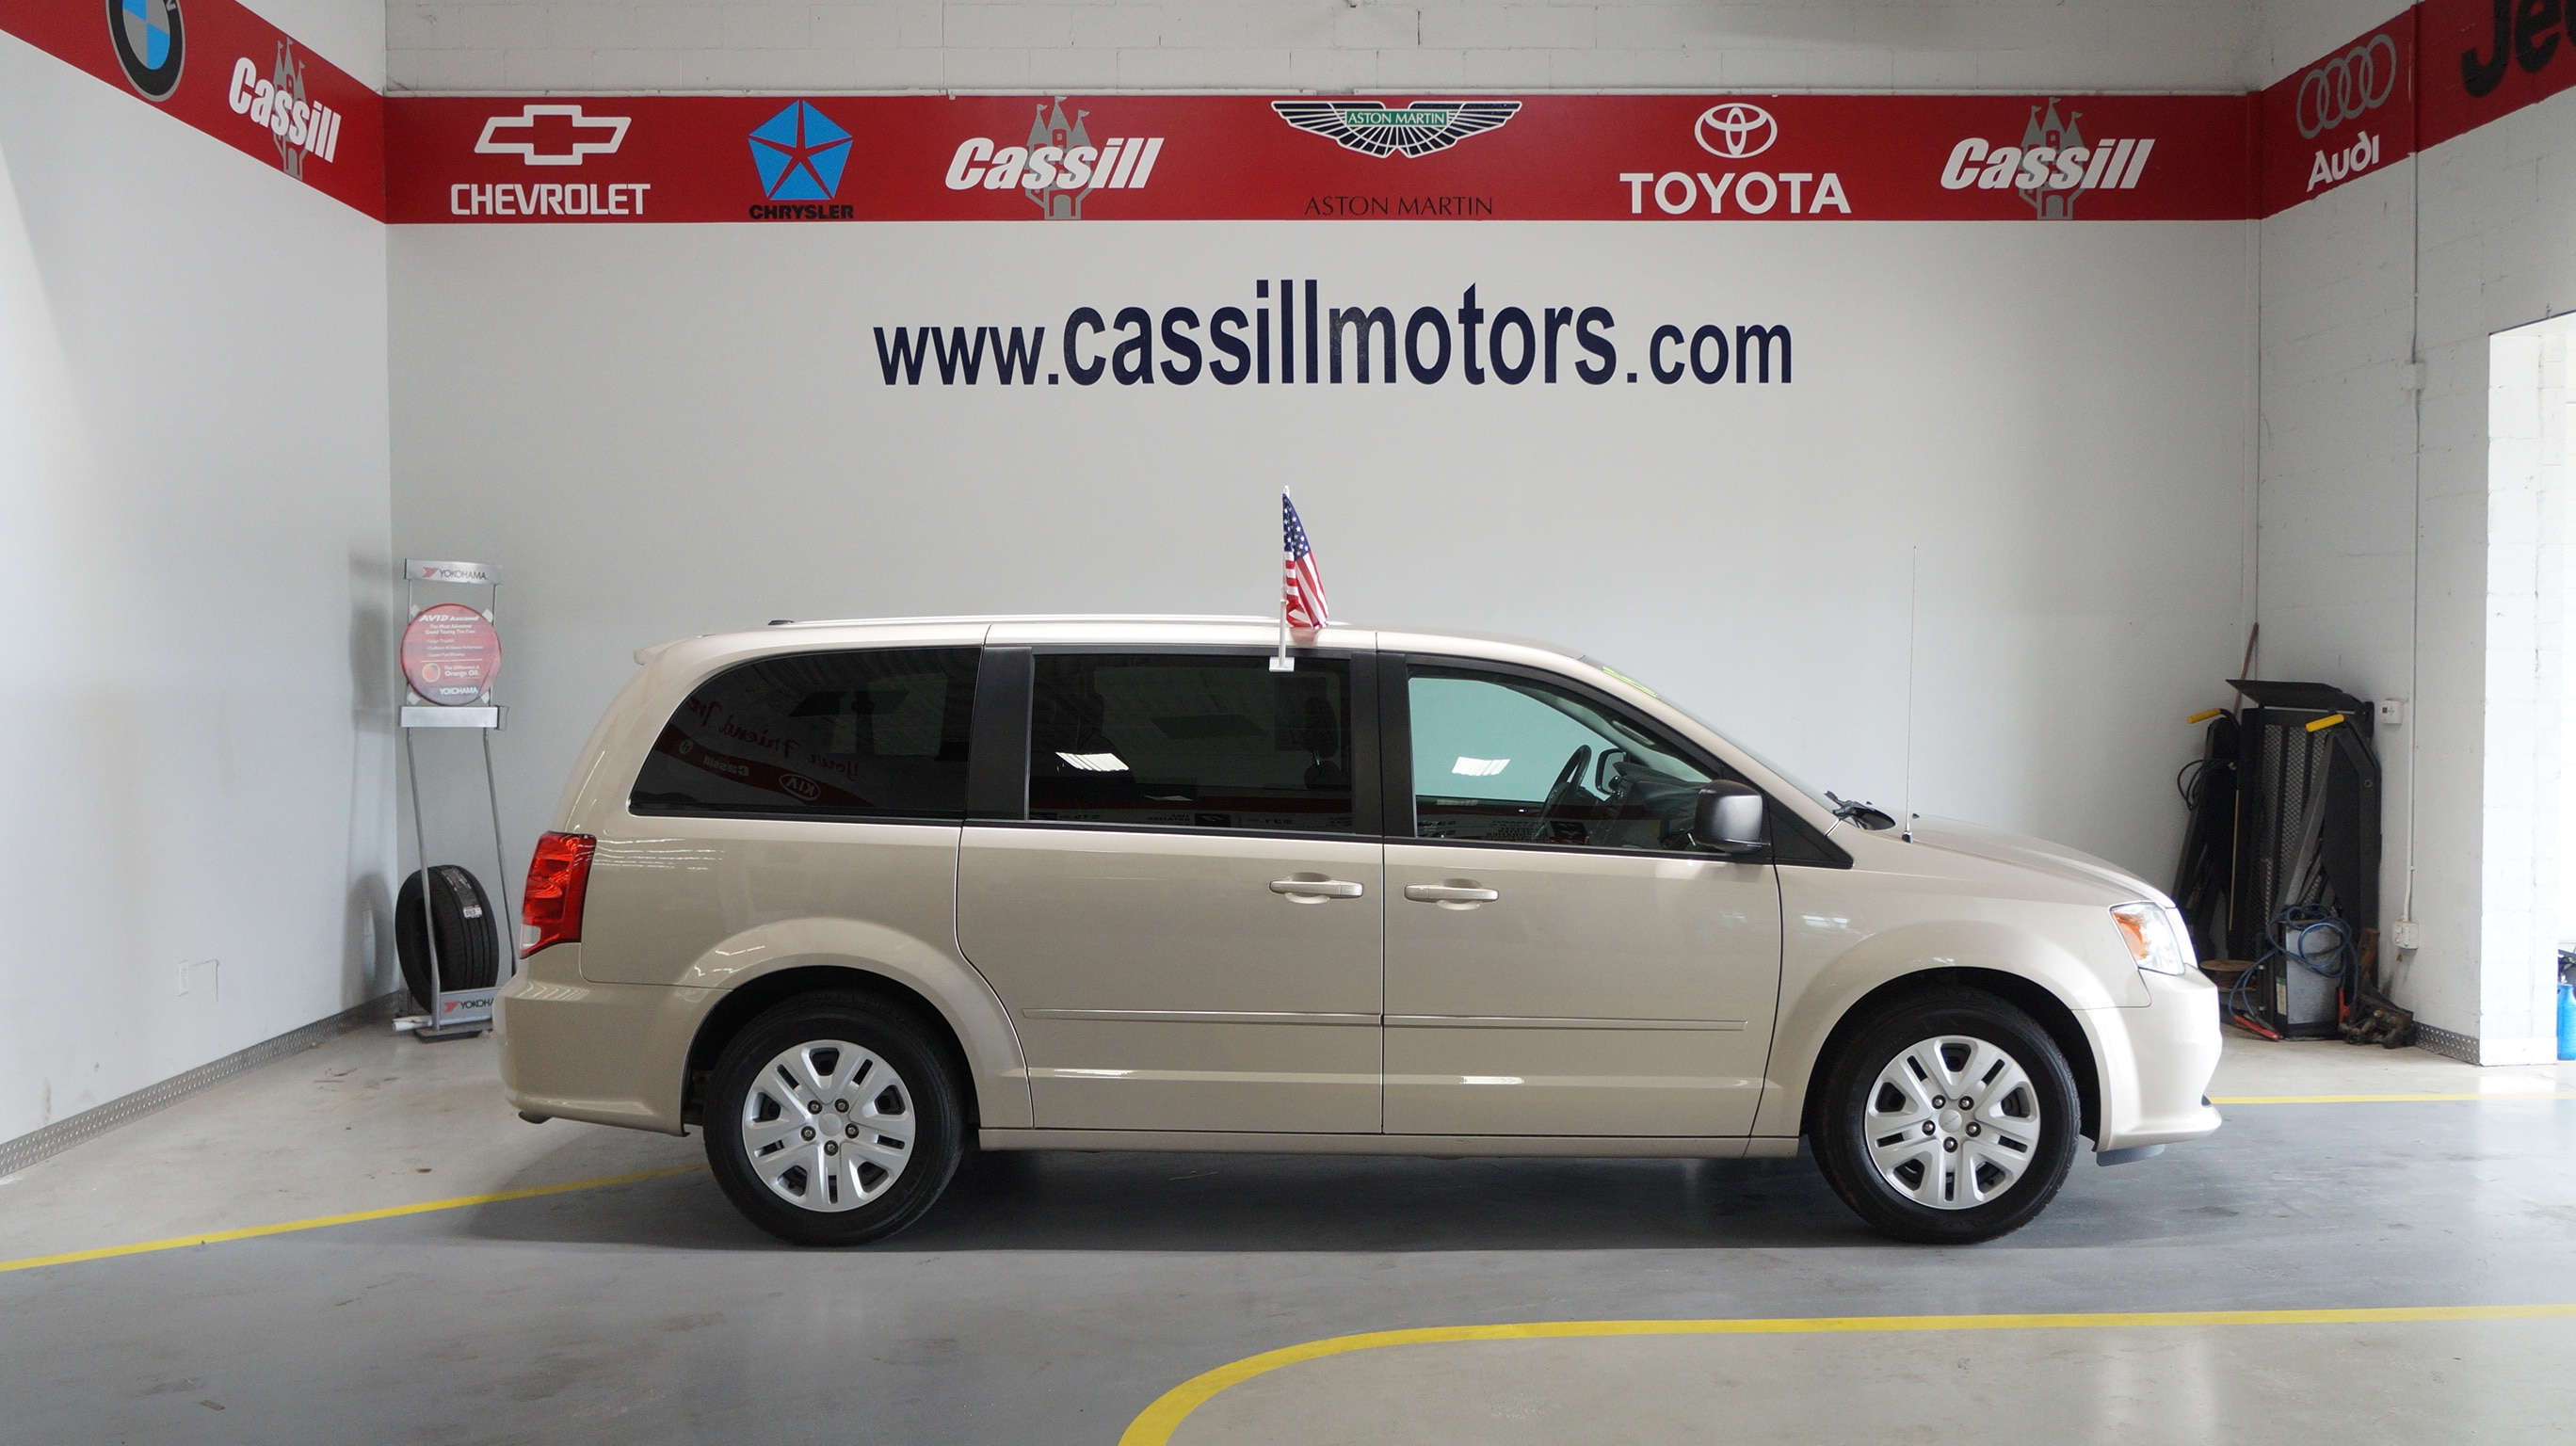 Wondrous Used 2015 Dodge Grand Caravan For Sale At Cassill Motors Inc Vin 2C4Rdgbg1Fr641929 Ncnpc Chair Design For Home Ncnpcorg